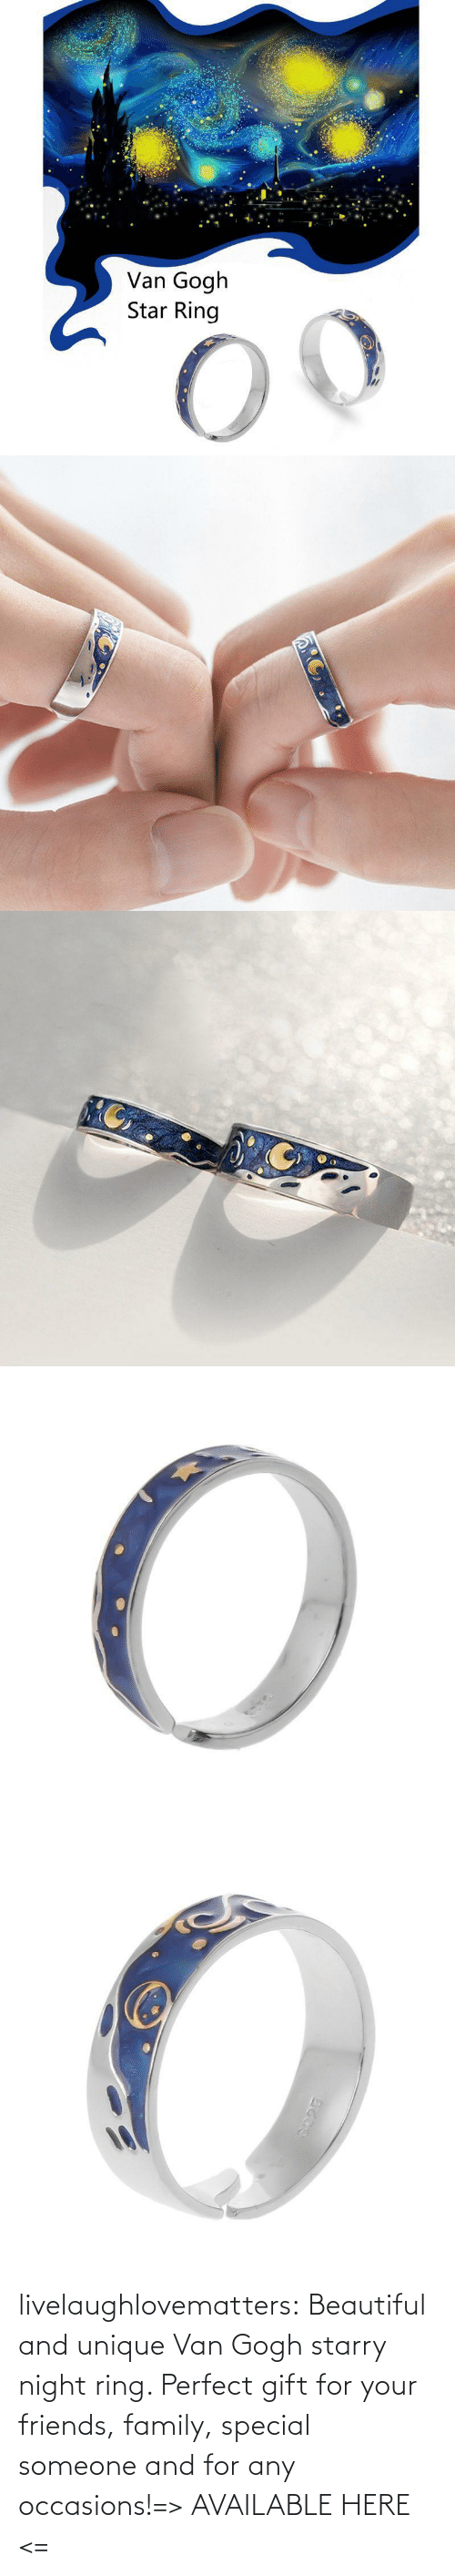 sky: livelaughlovematters:  Beautiful and unique Van Gogh starry night ring. Perfect gift for your friends, family, special someone and for any occasions!=> AVAILABLE HERE <=